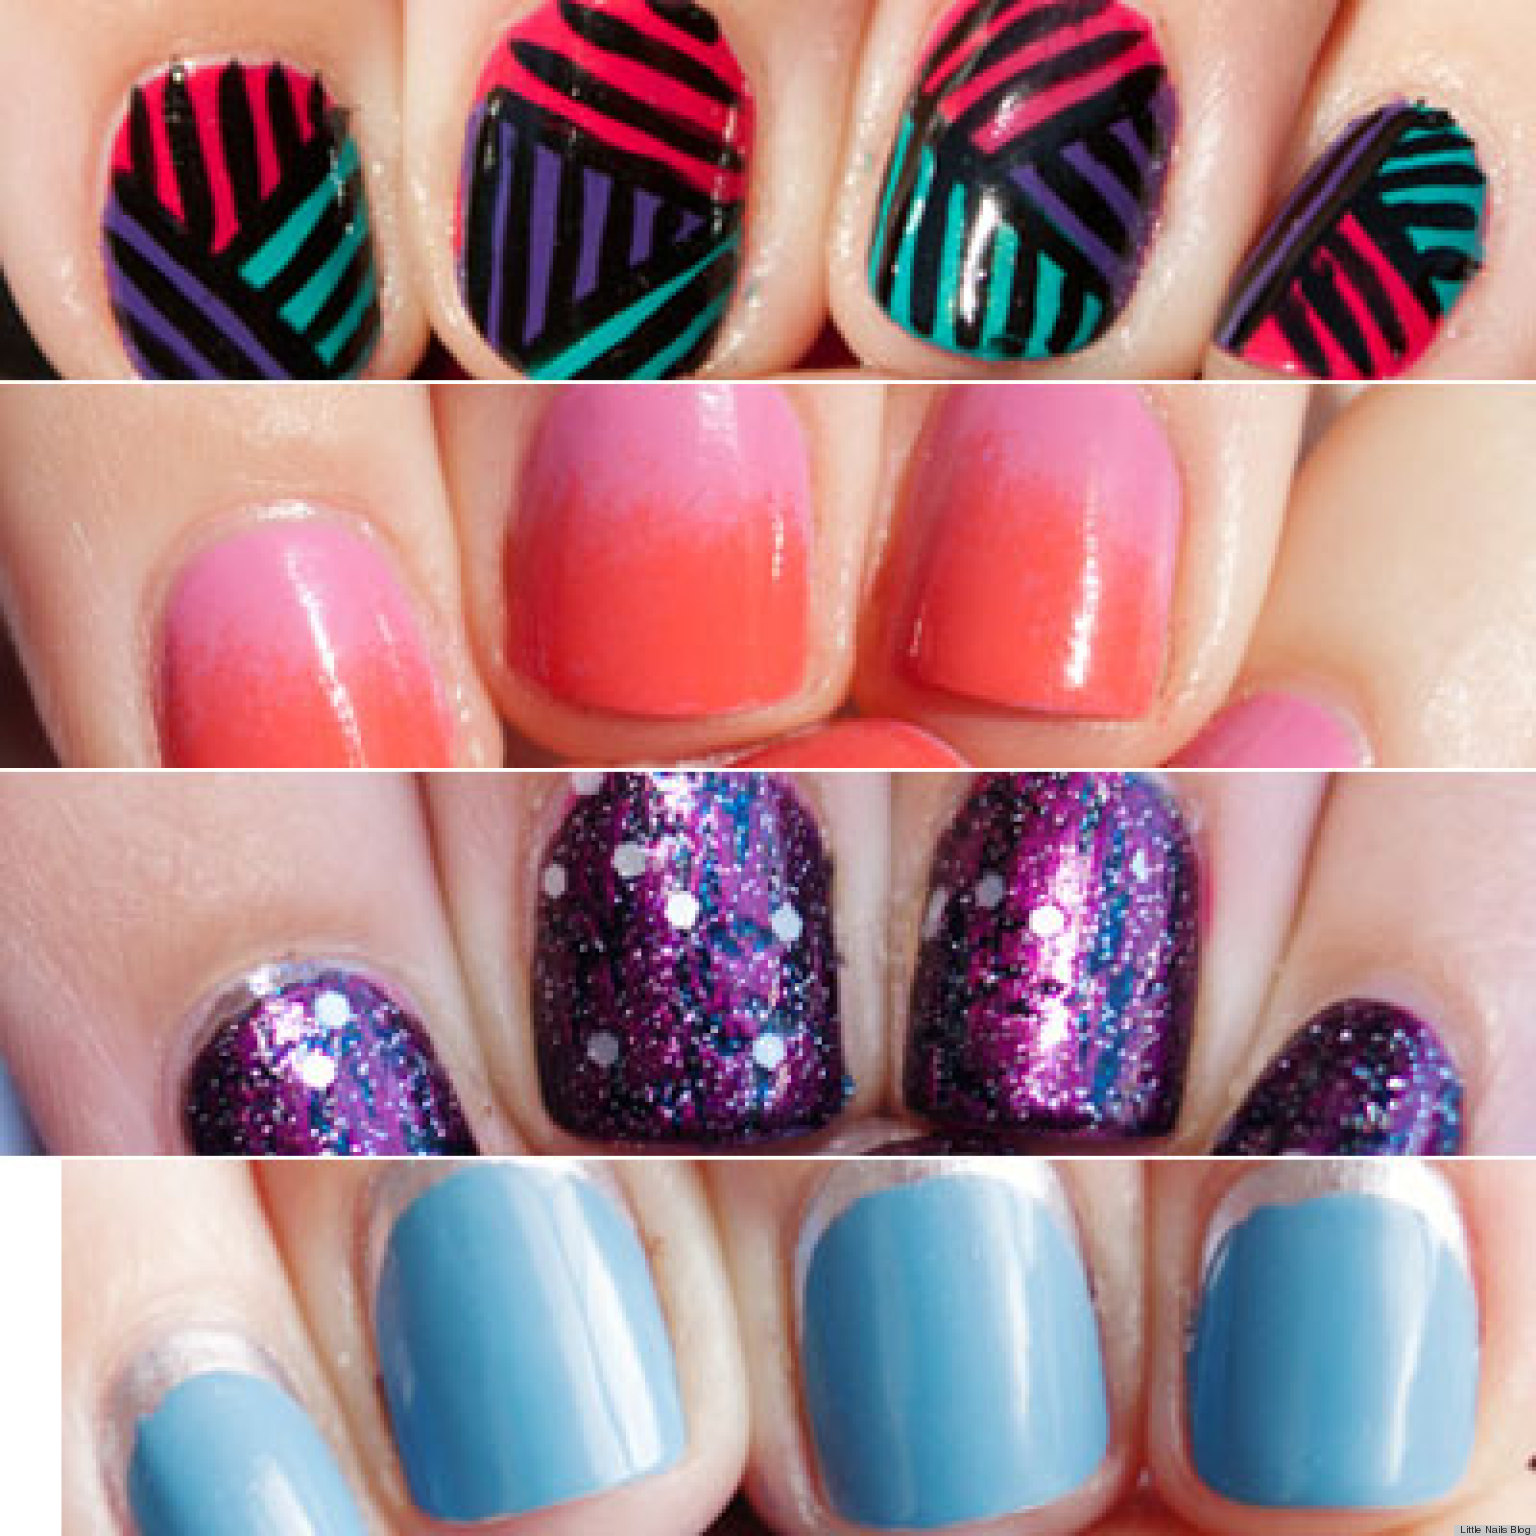 Nail designs 2014 tumblr step by step for short nails with do it yourself nail designs nail designs 2014 tumblr step by step for short nails with rhinestones with bows tumblr acrylic summber ideas solutioingenieria Choice Image